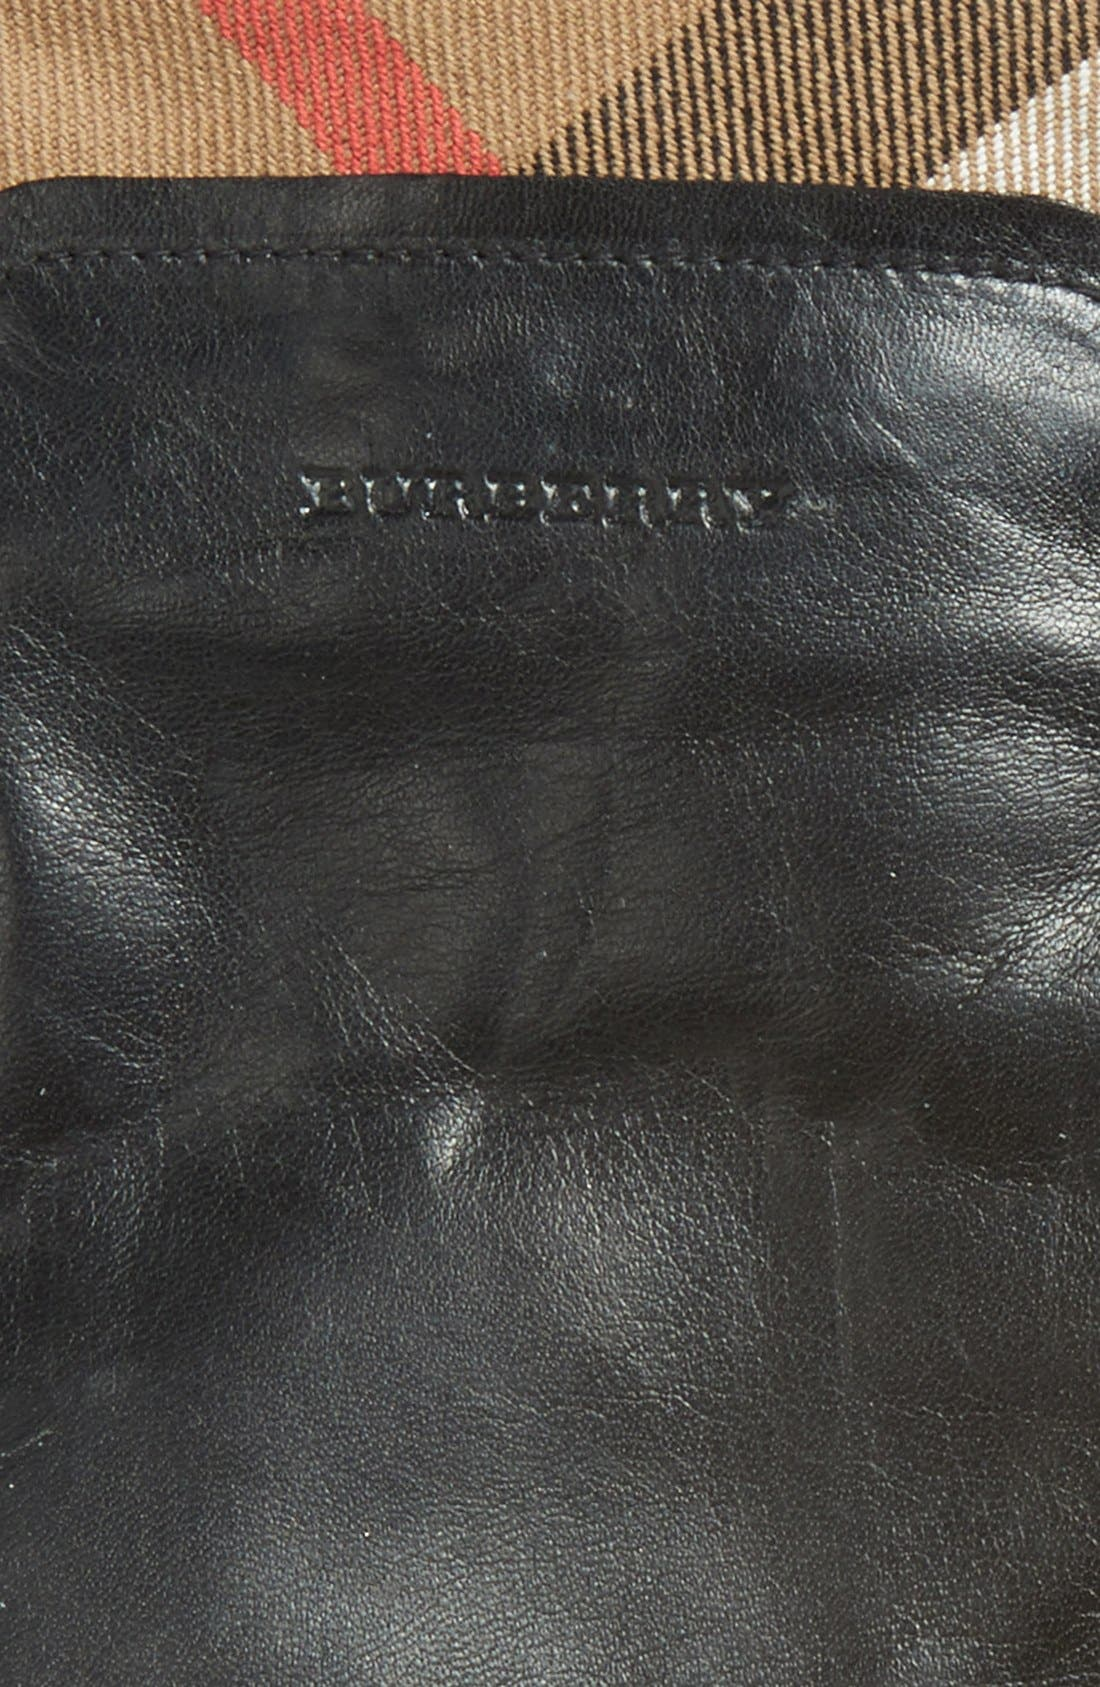 BURBERRY,                             'Jenny - House Check' Touch Tech Leather Gloves,                             Alternate thumbnail 3, color,                             001